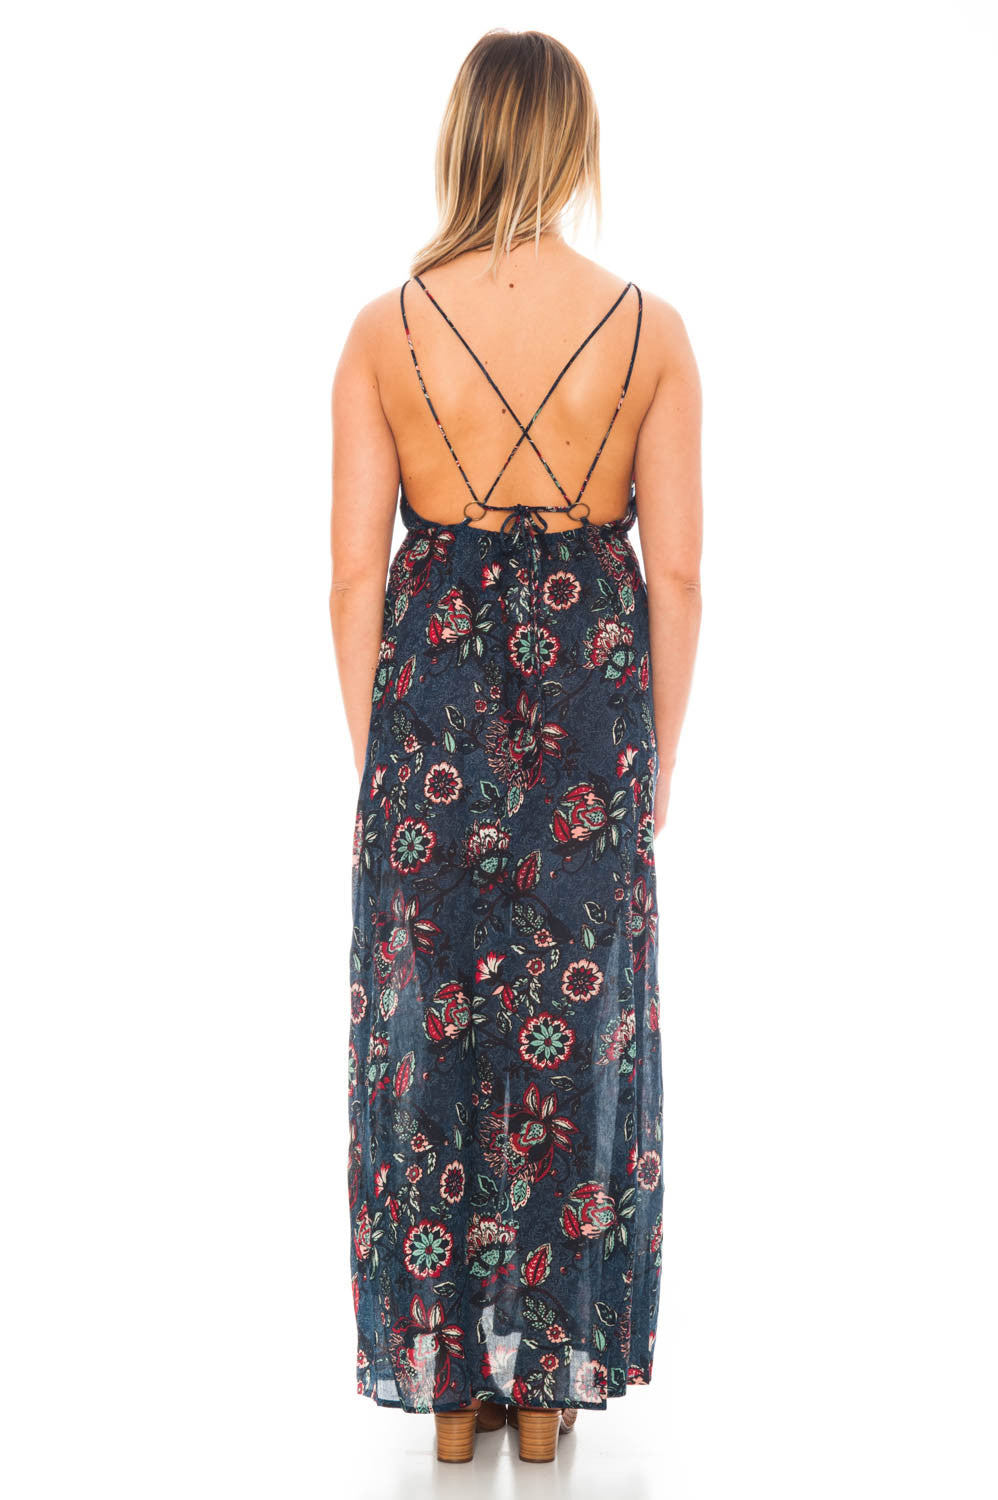 Dress - Patterned Maxi with Criss Cross Back